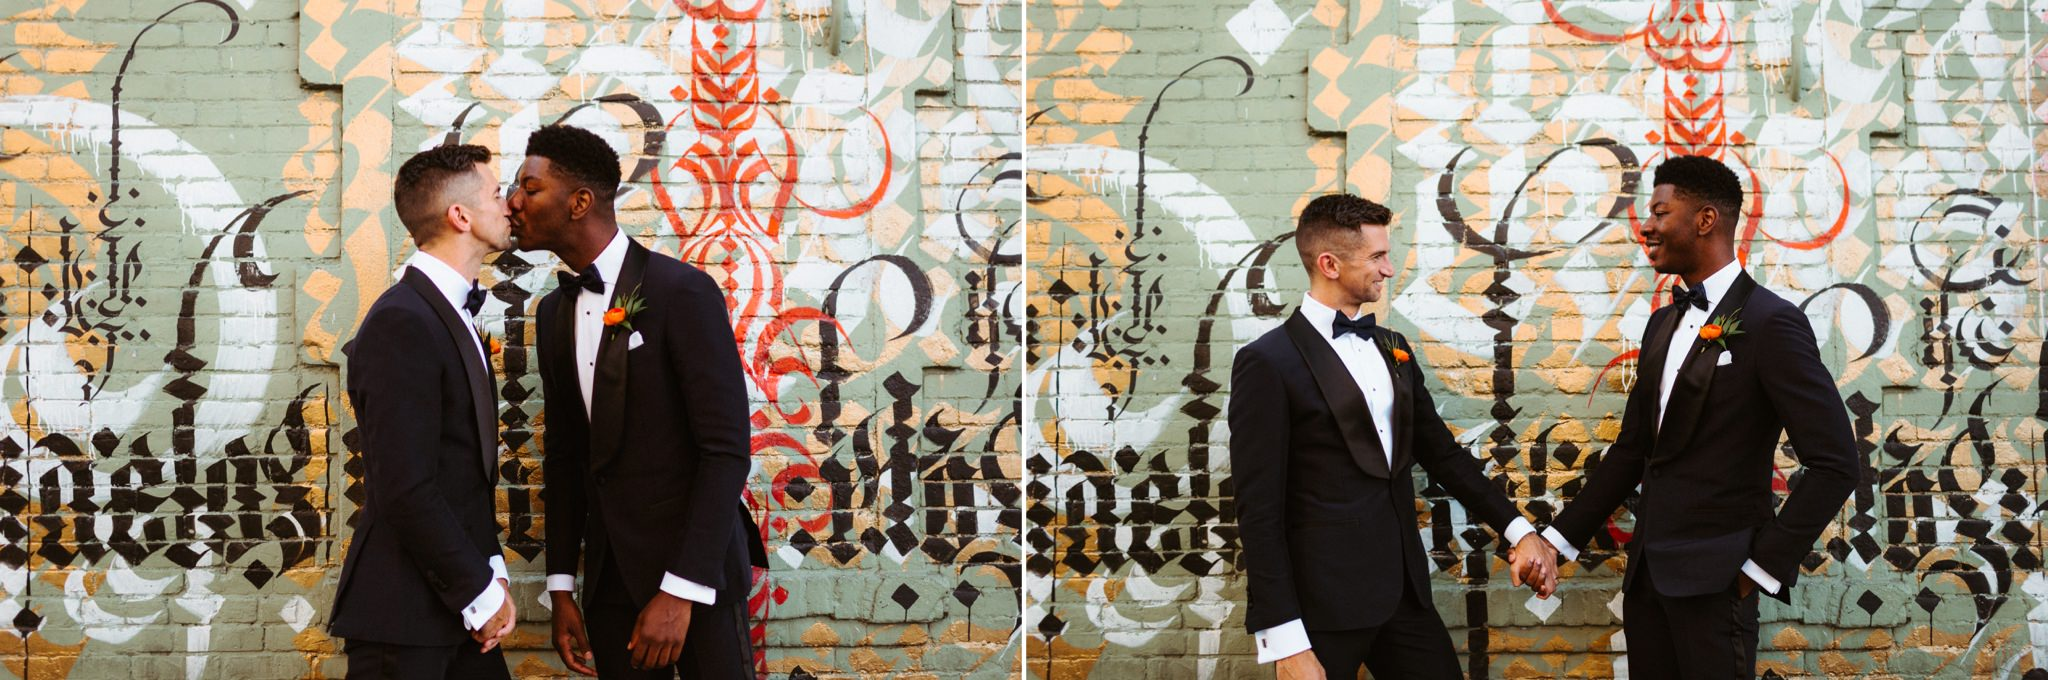 dtla wedding photographer 023